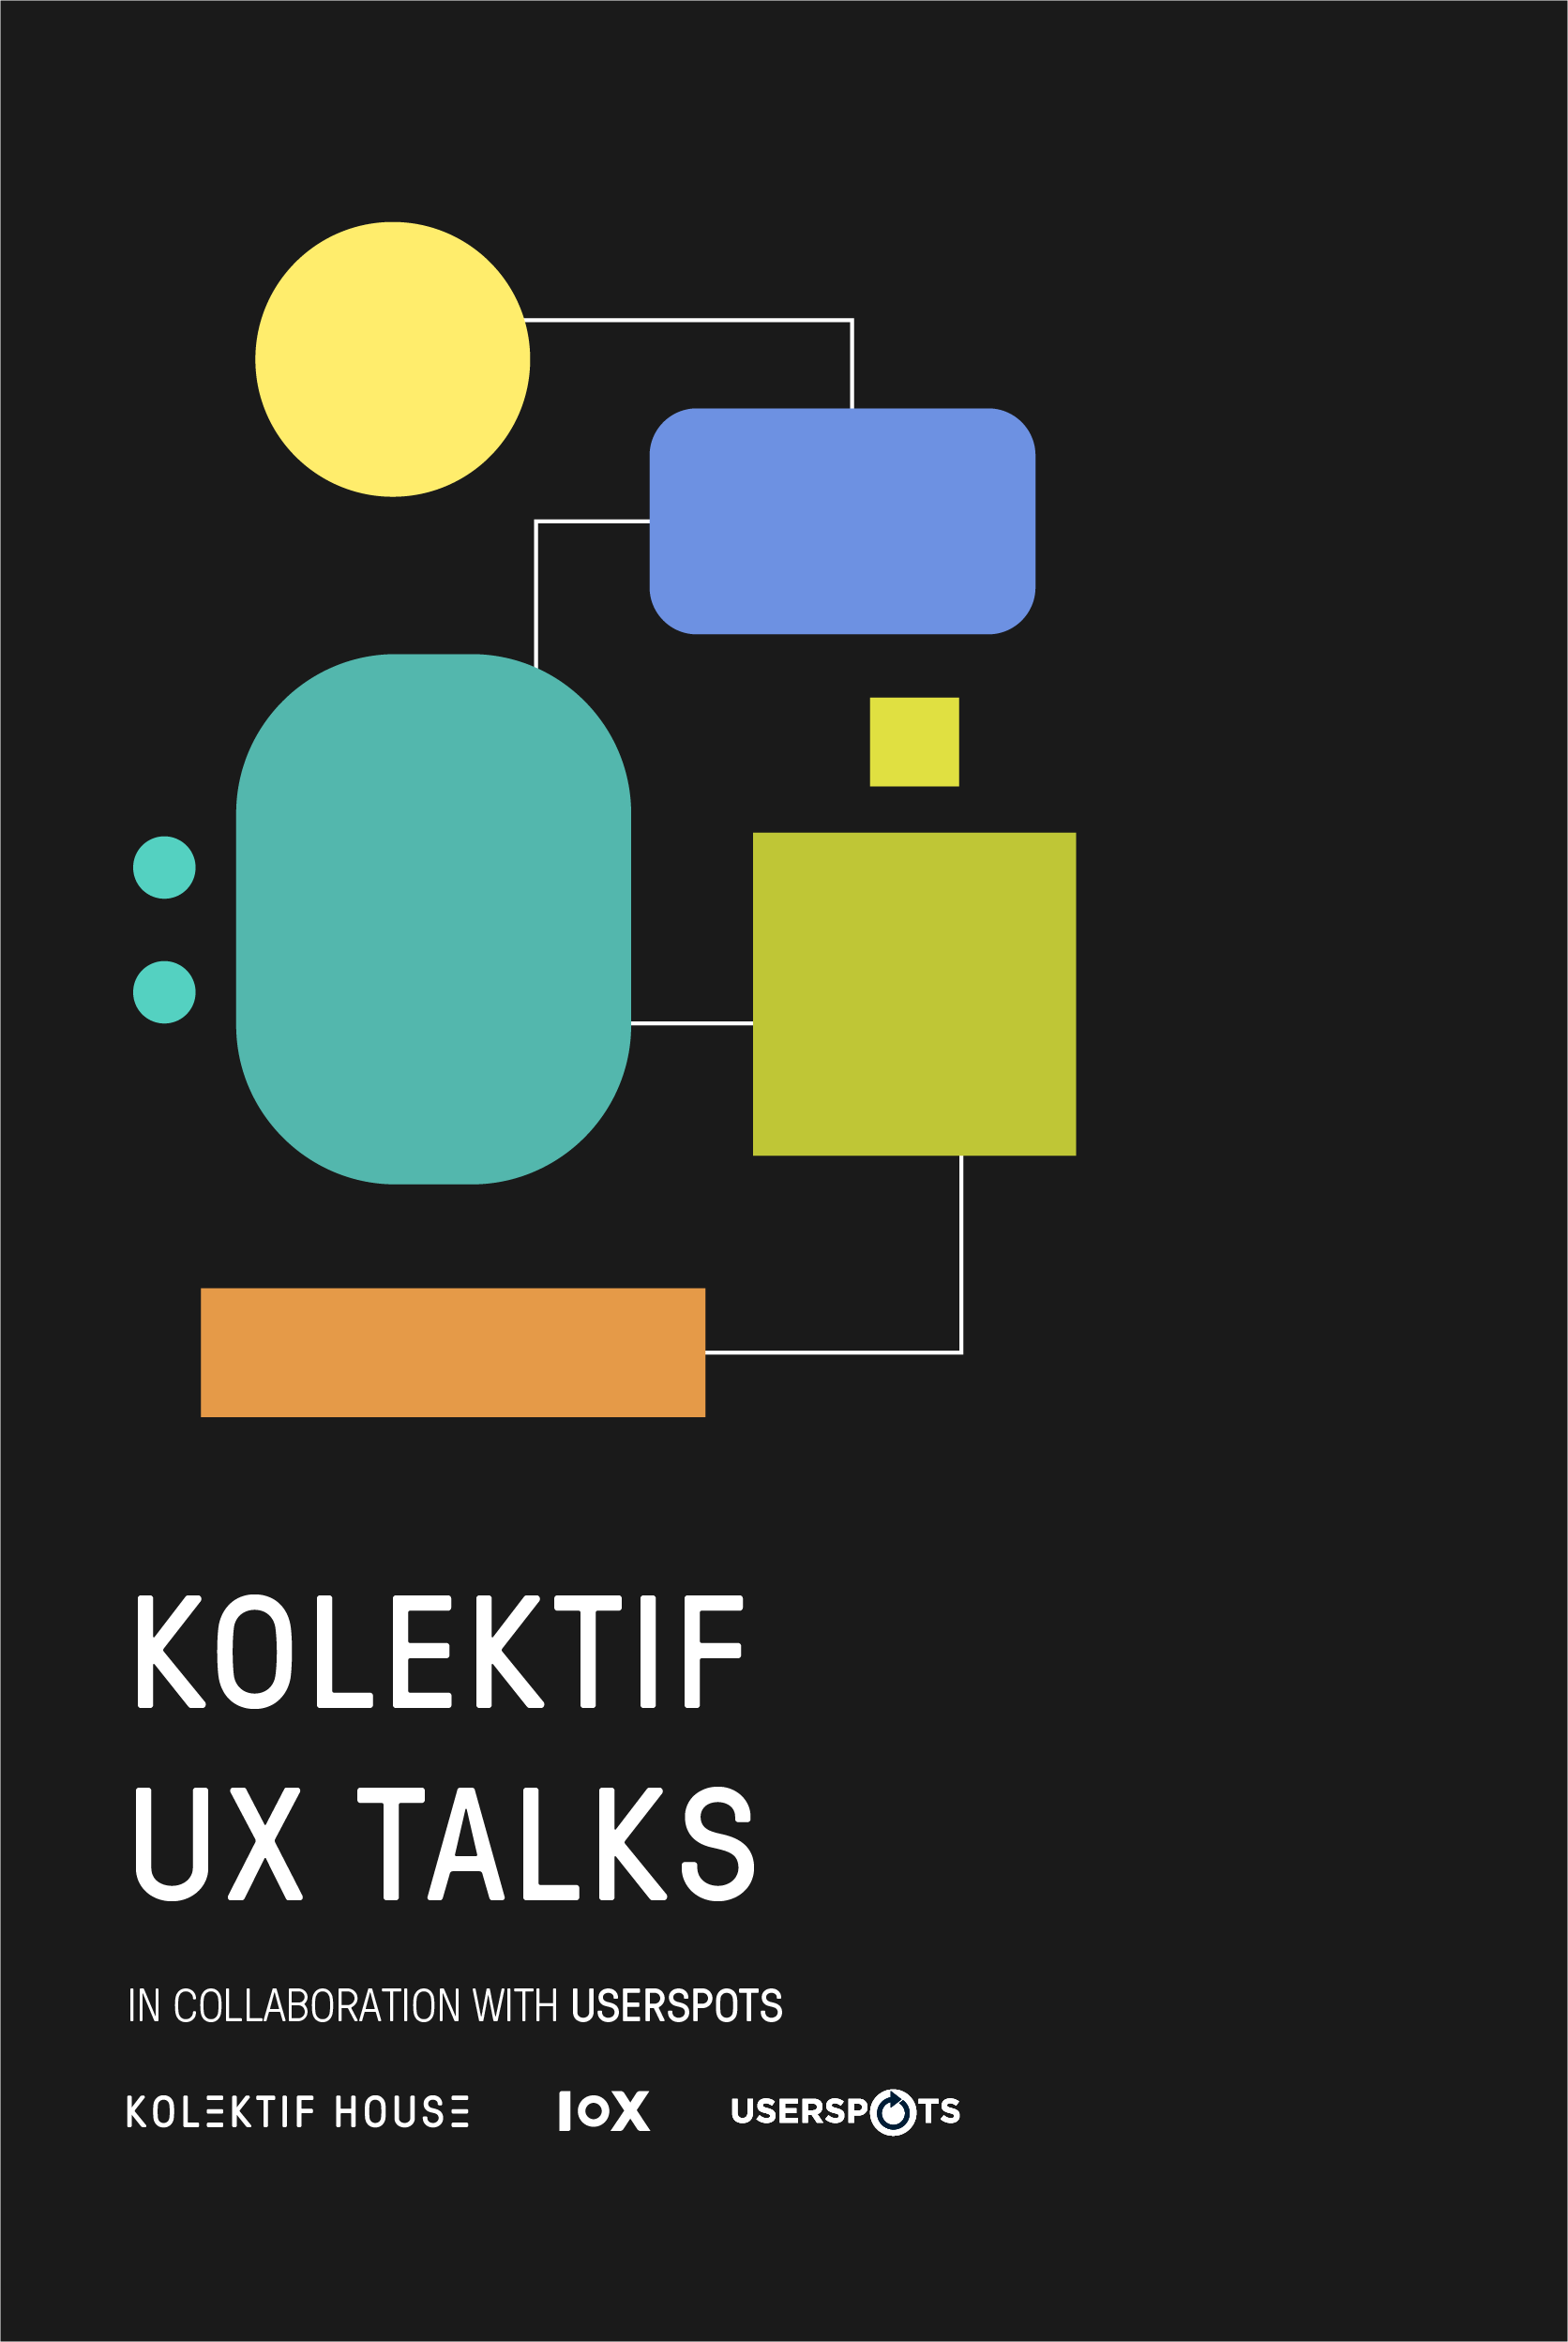 kolektif-ux-talks